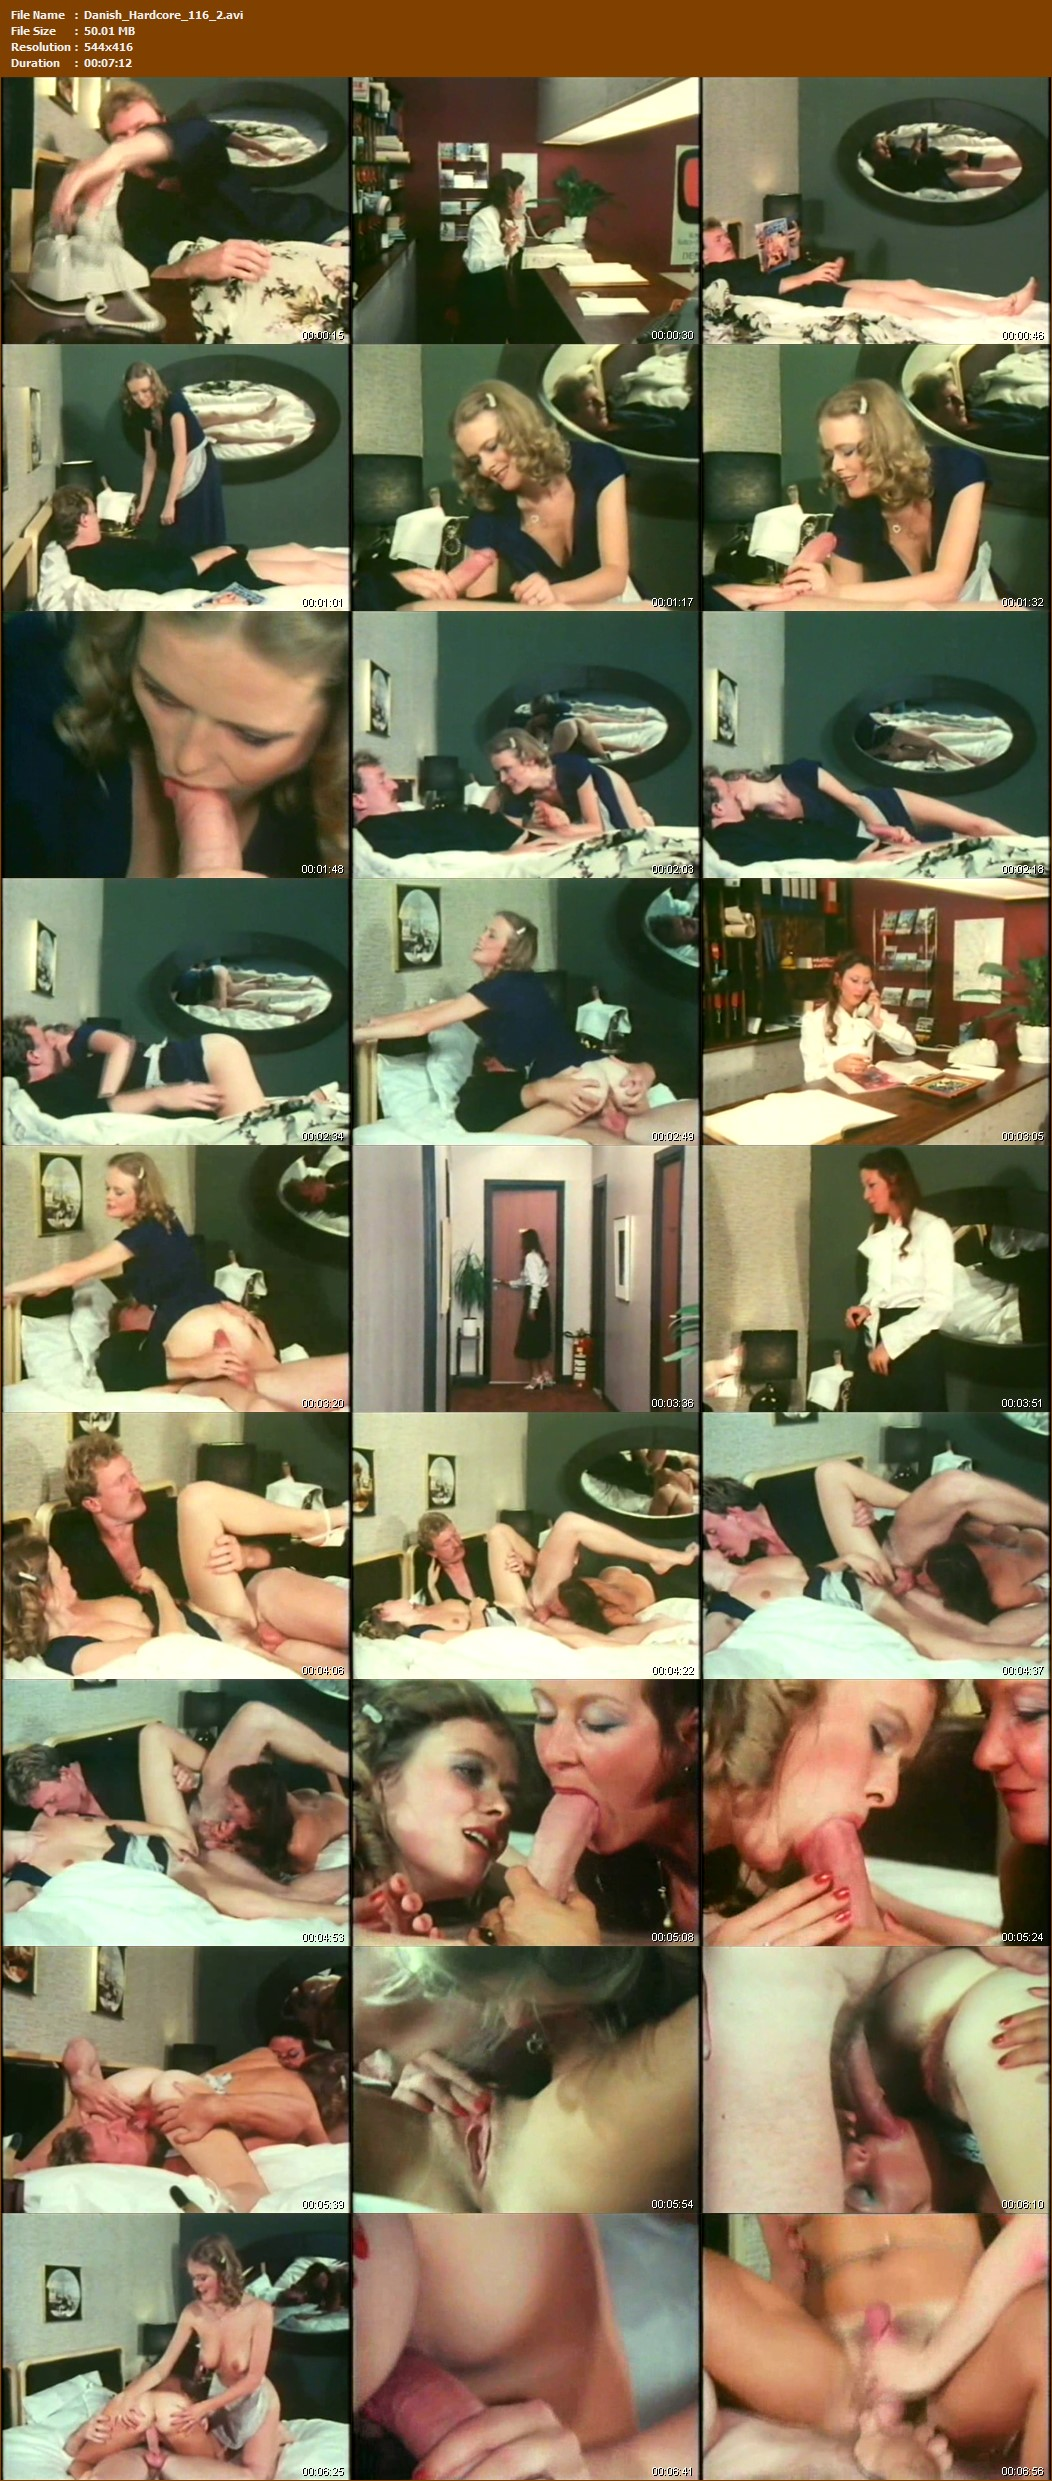 Melodie kiss centrine cheryl in classic porn site - 88 part 5